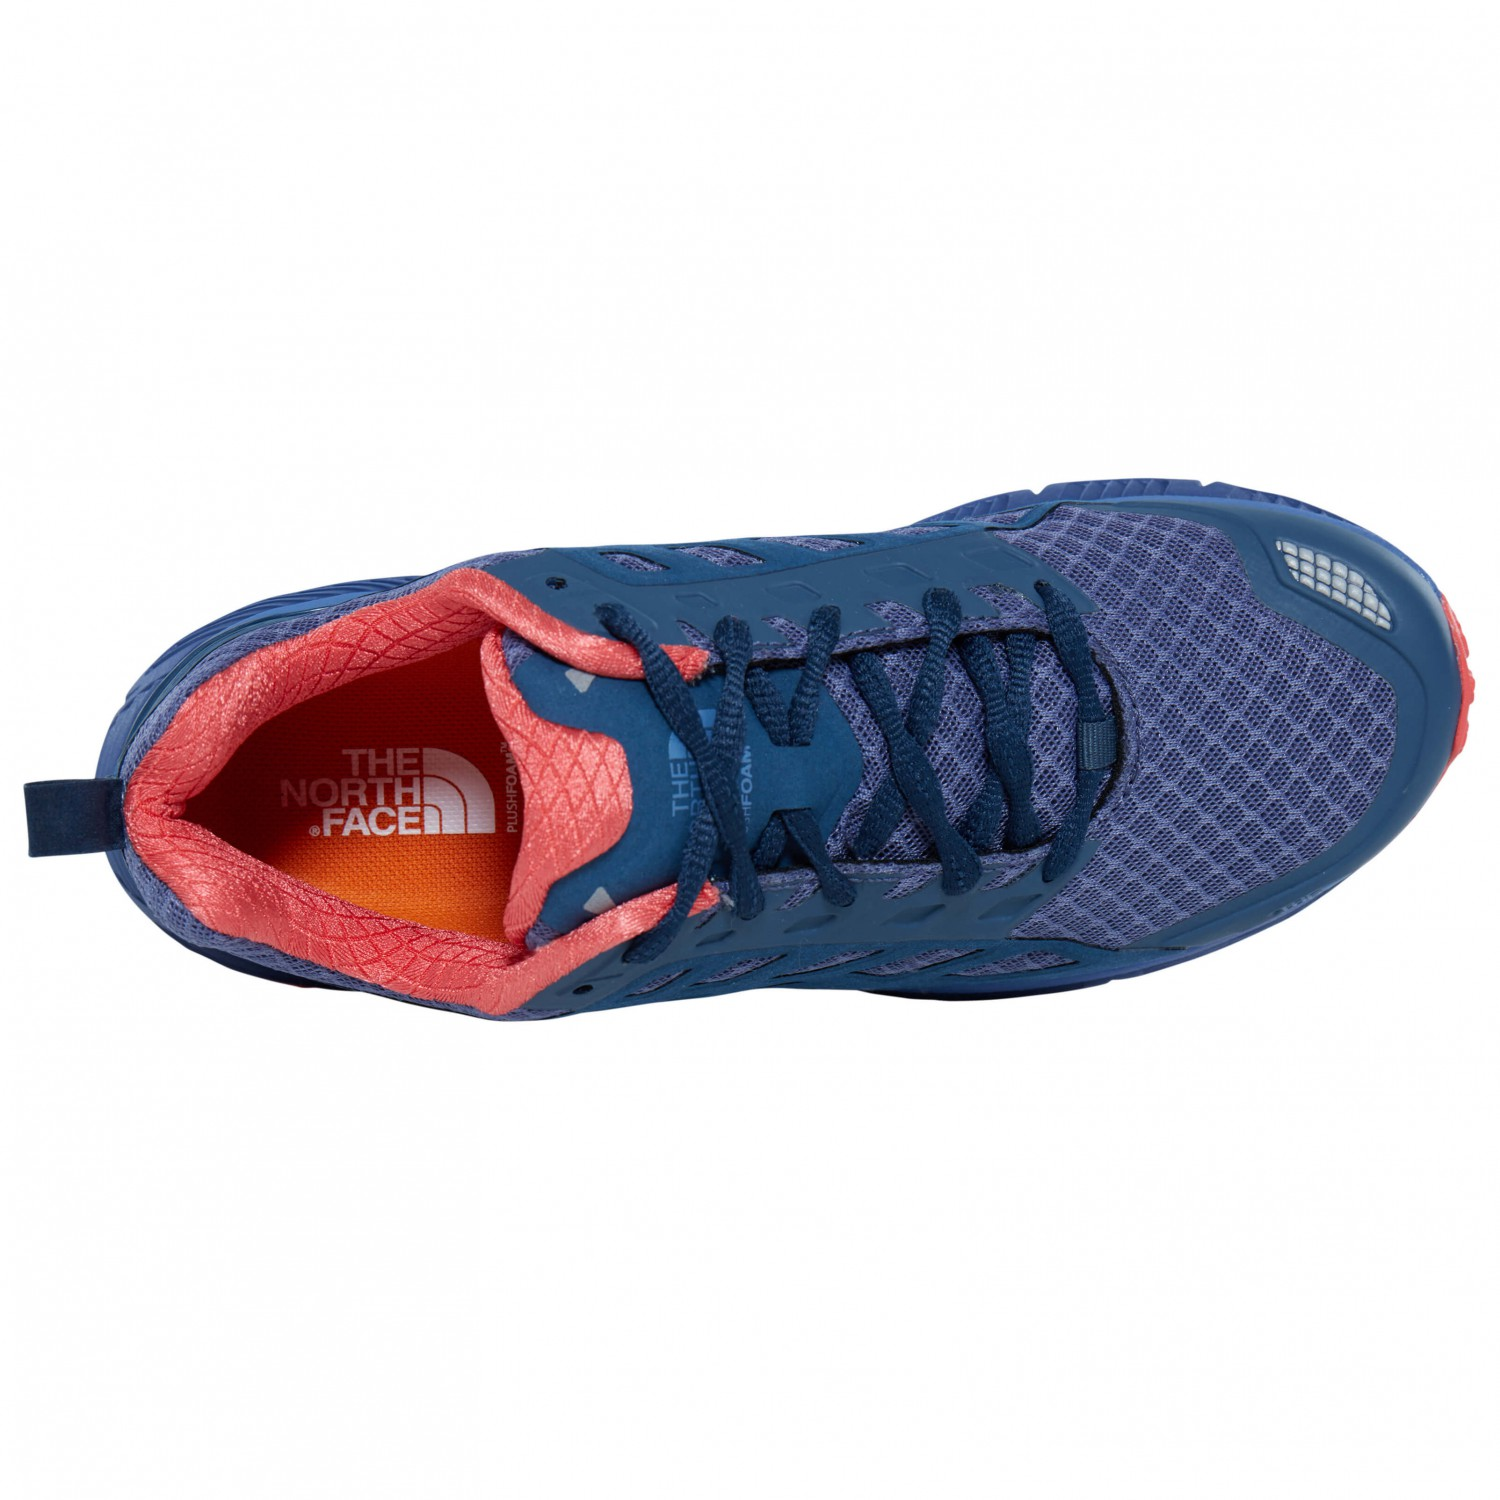 The North Face Women S Endurus Tr Trail Running Shoes